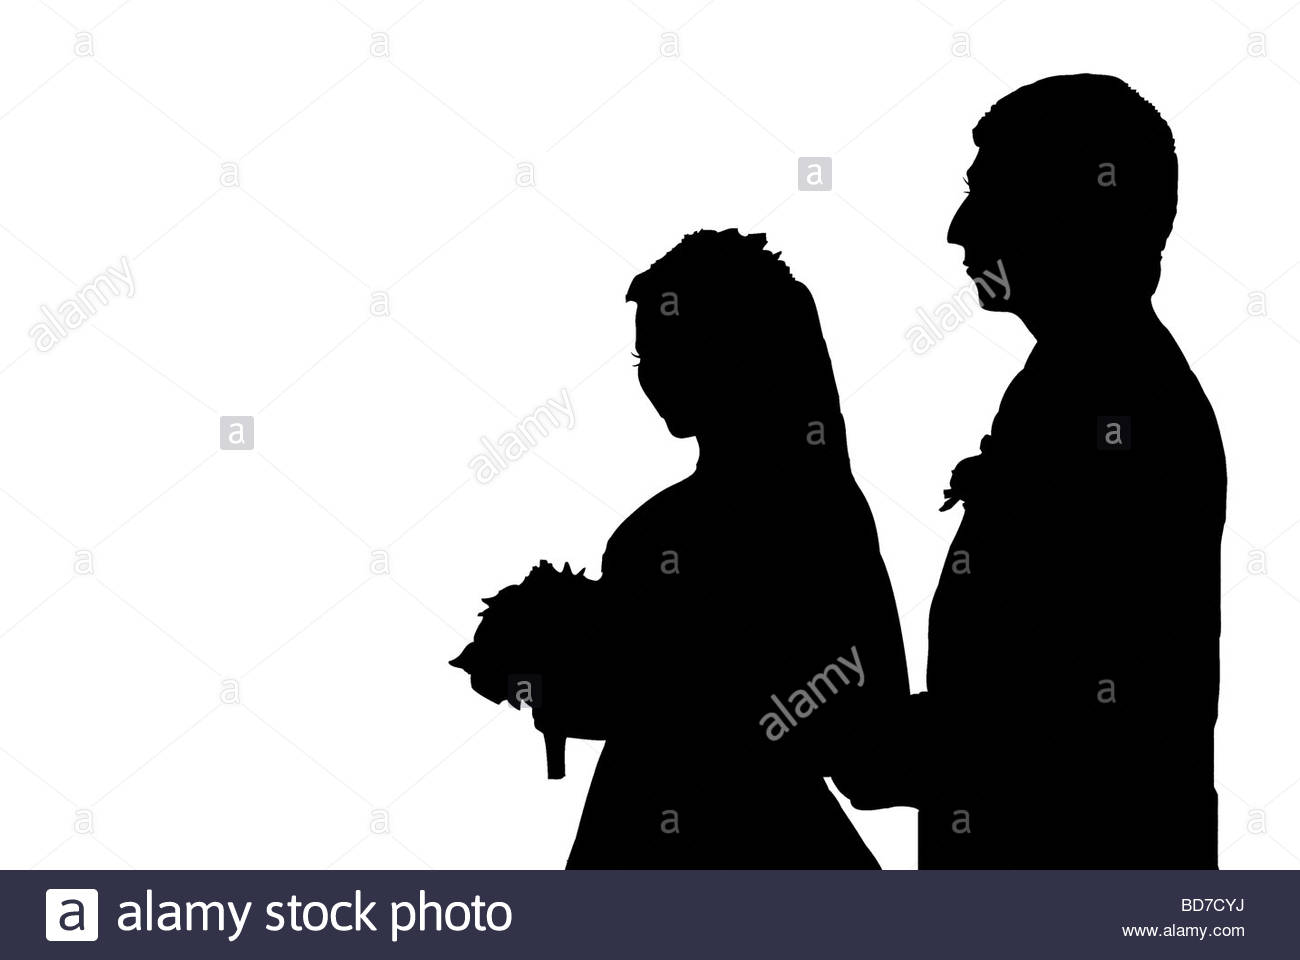 1300x960 Silhouette People Embracing Black And White Stock Photos Amp Images